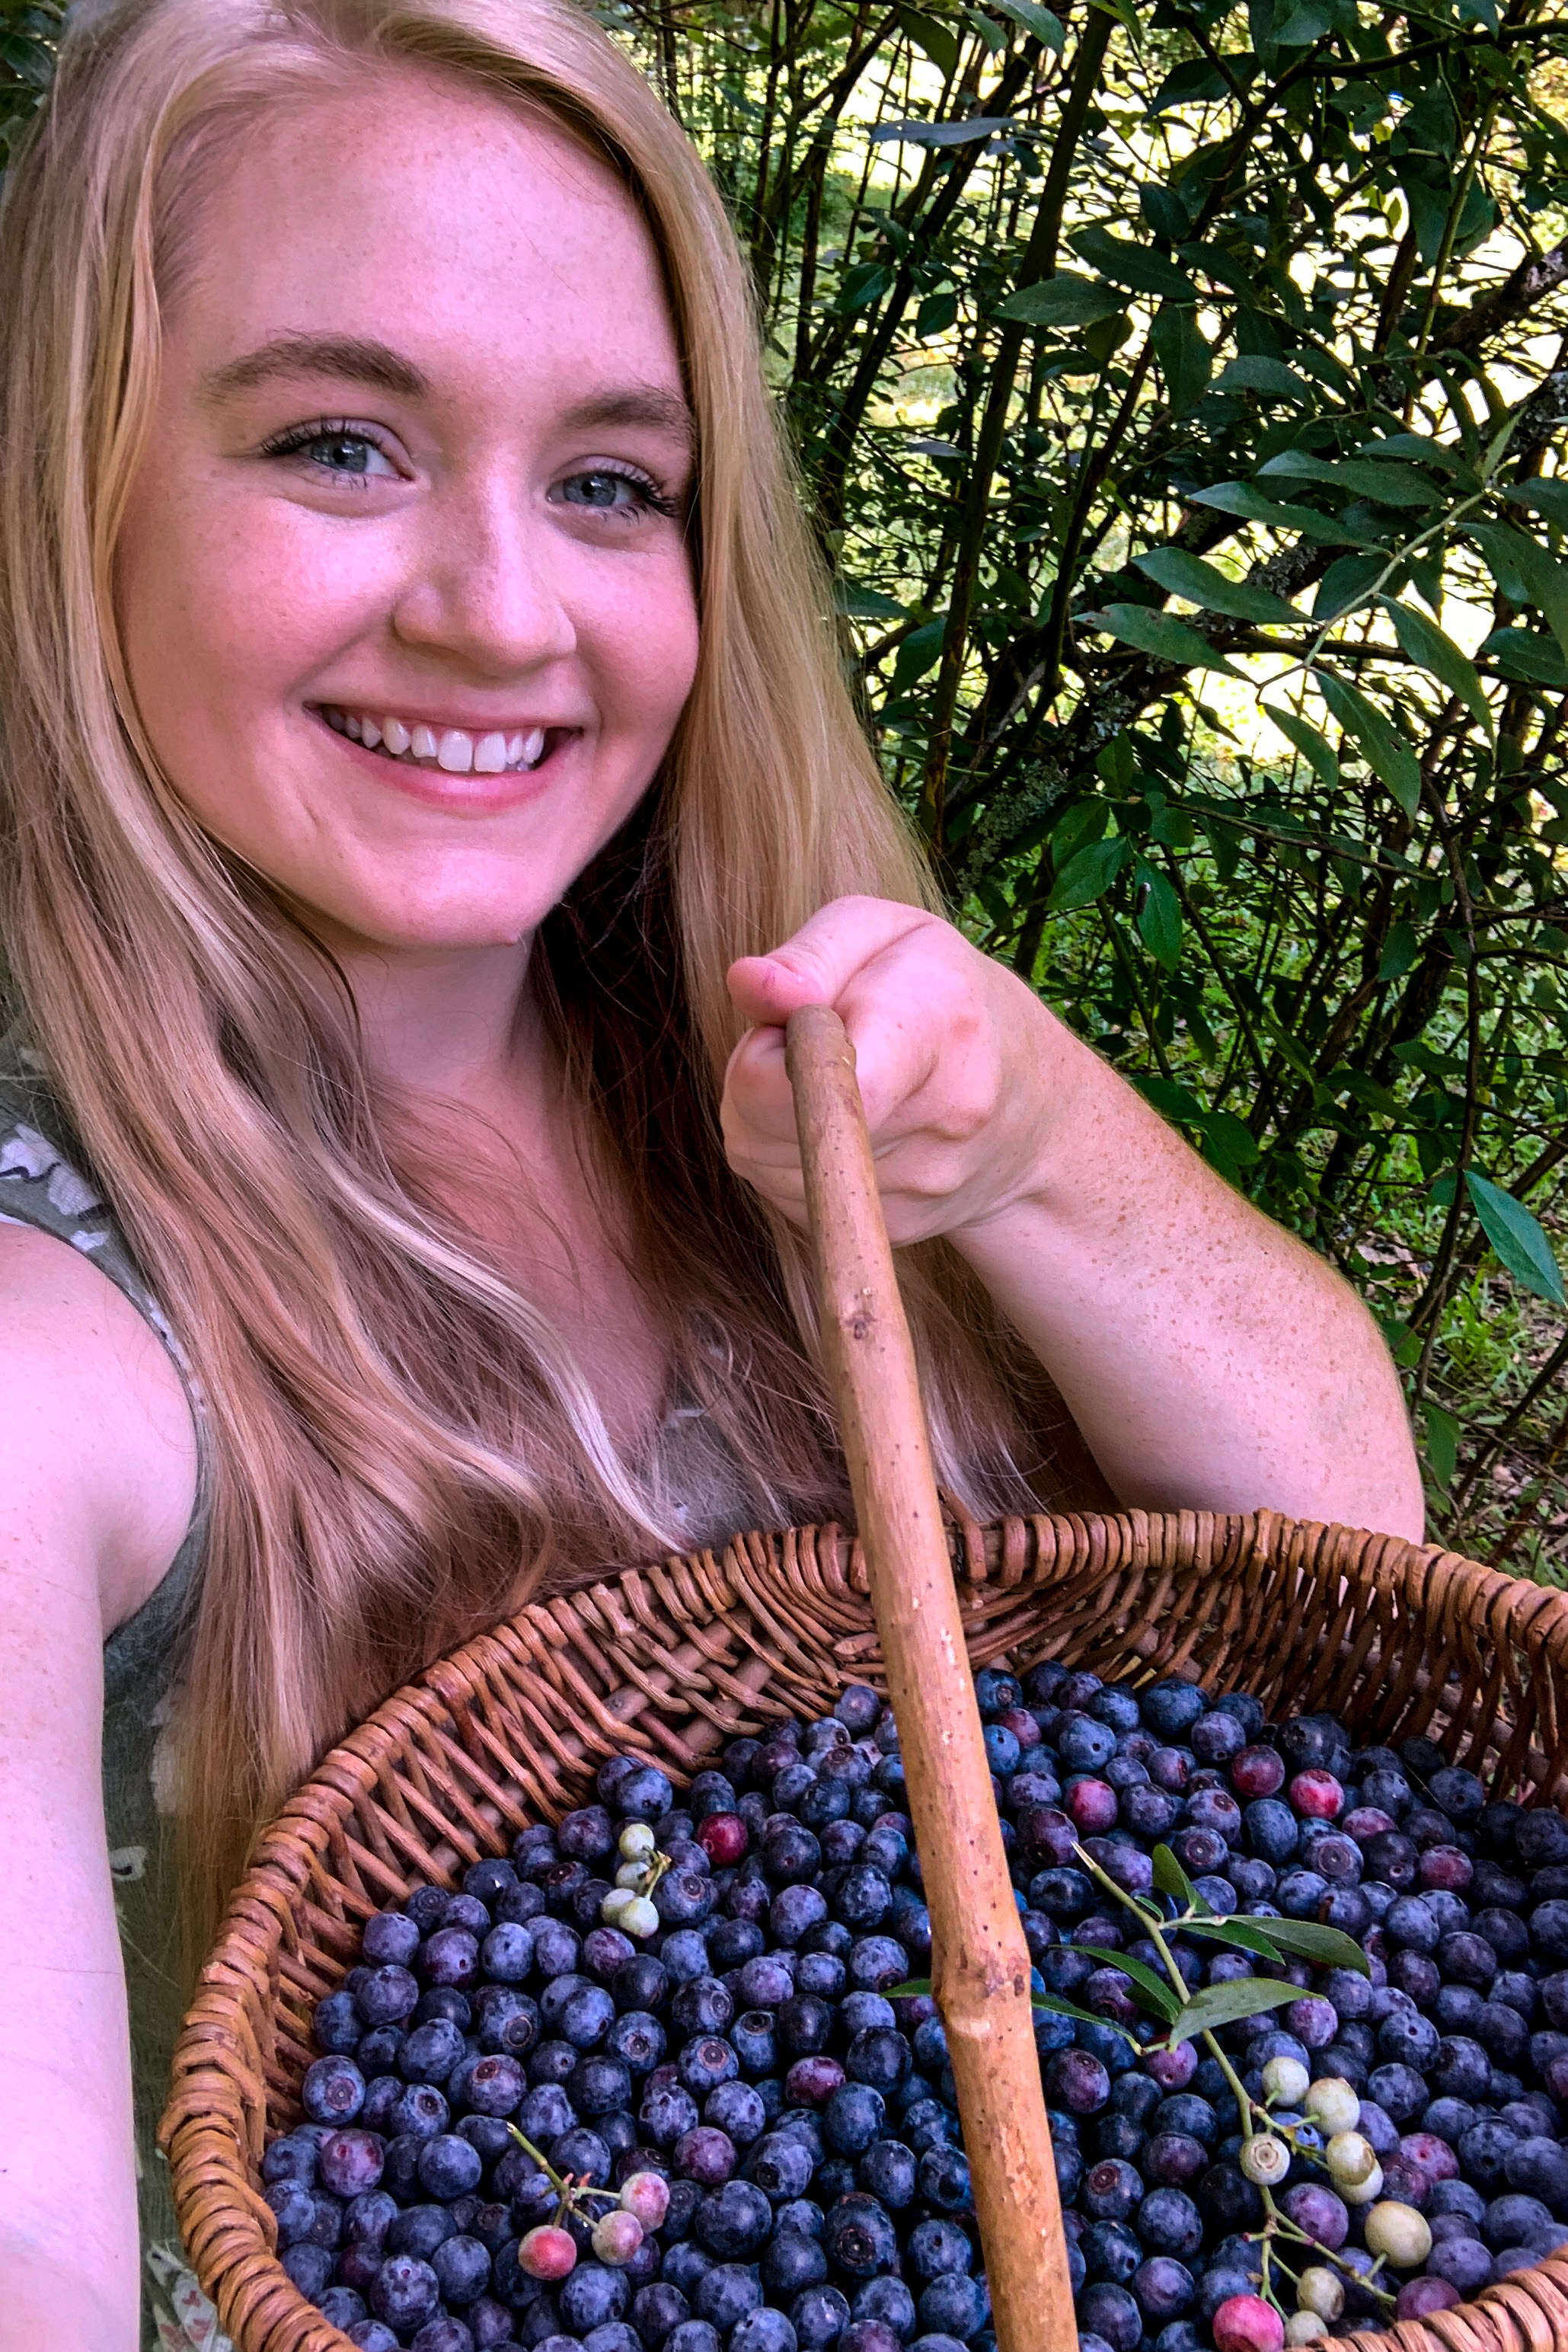 girl with basket of fresh picked blueberries